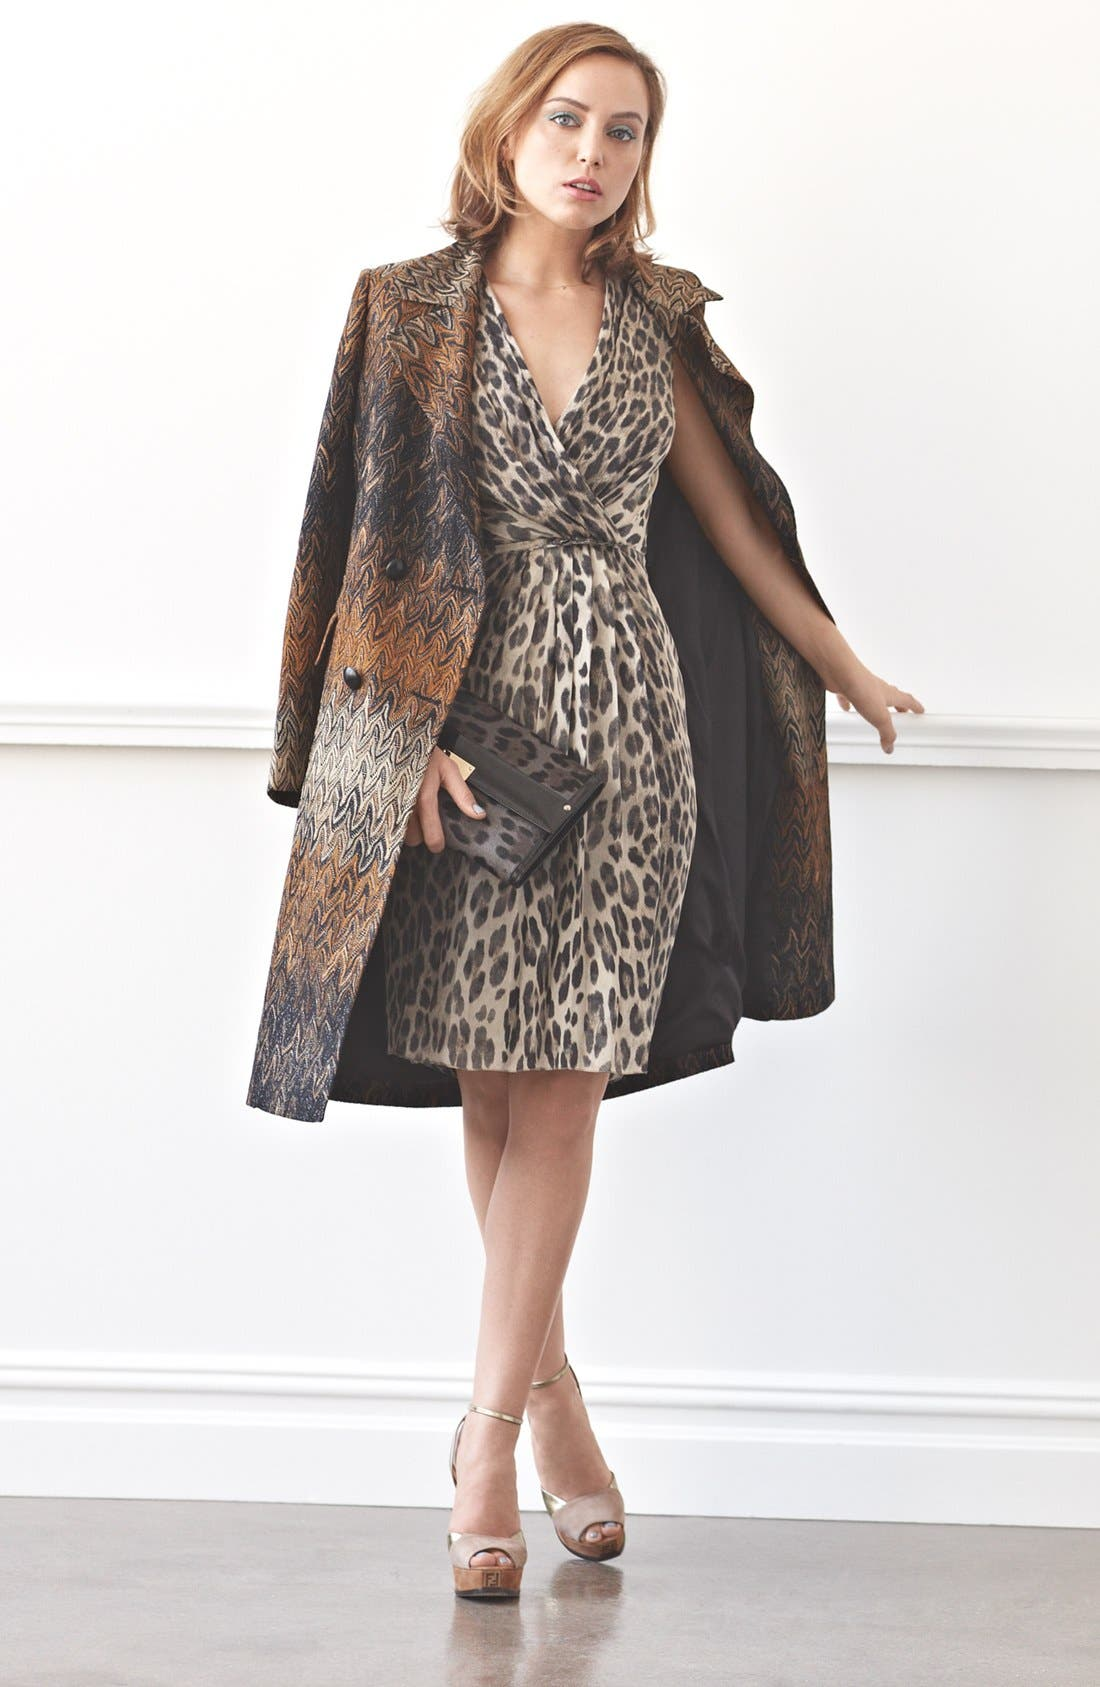 Main Image - Missoni Coat & L'AGENCE Dress